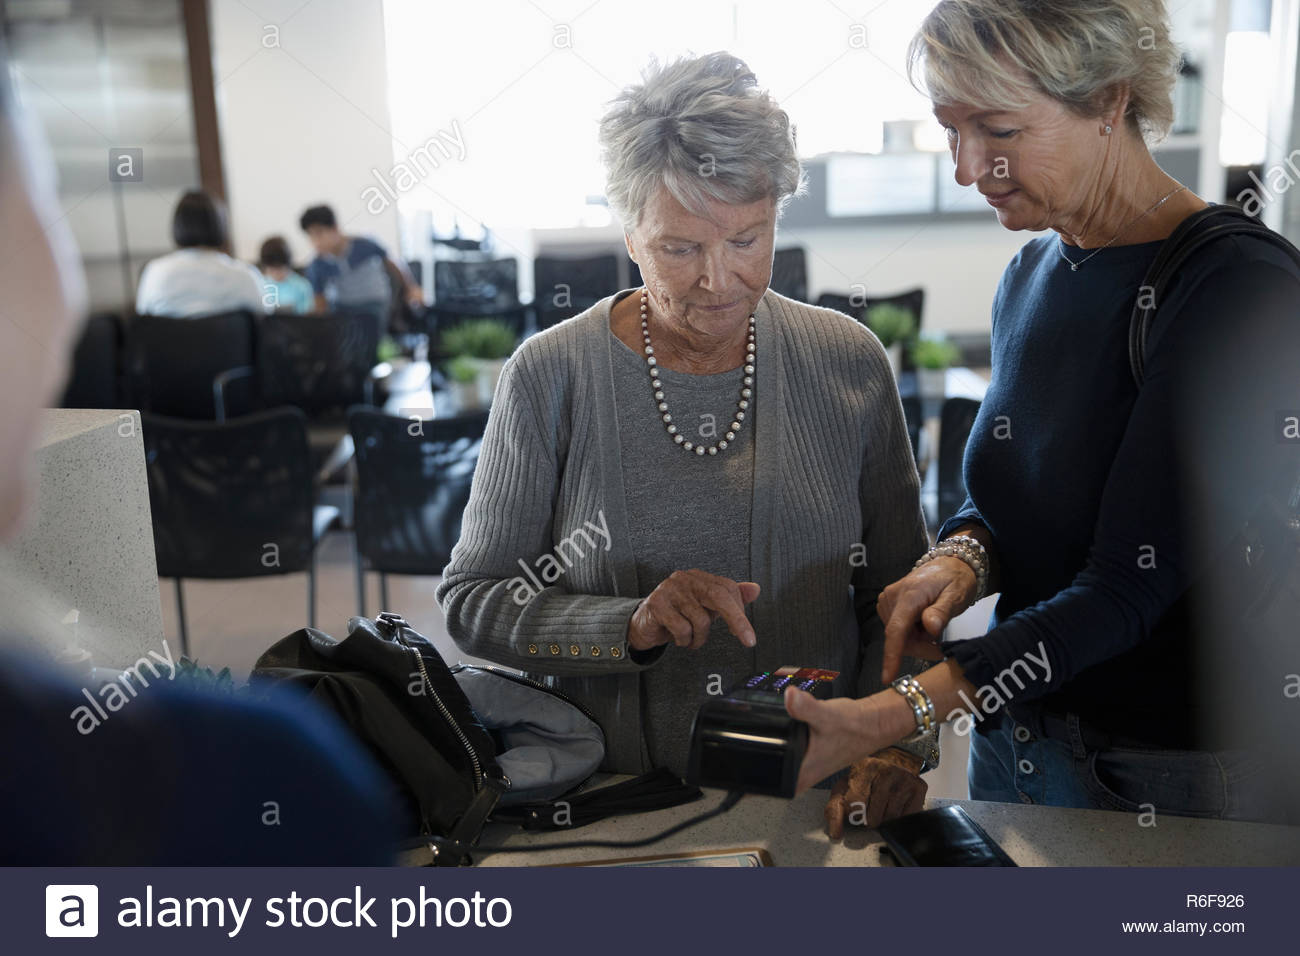 Woman helping senior mother pay at clinic check-in - Stock Image